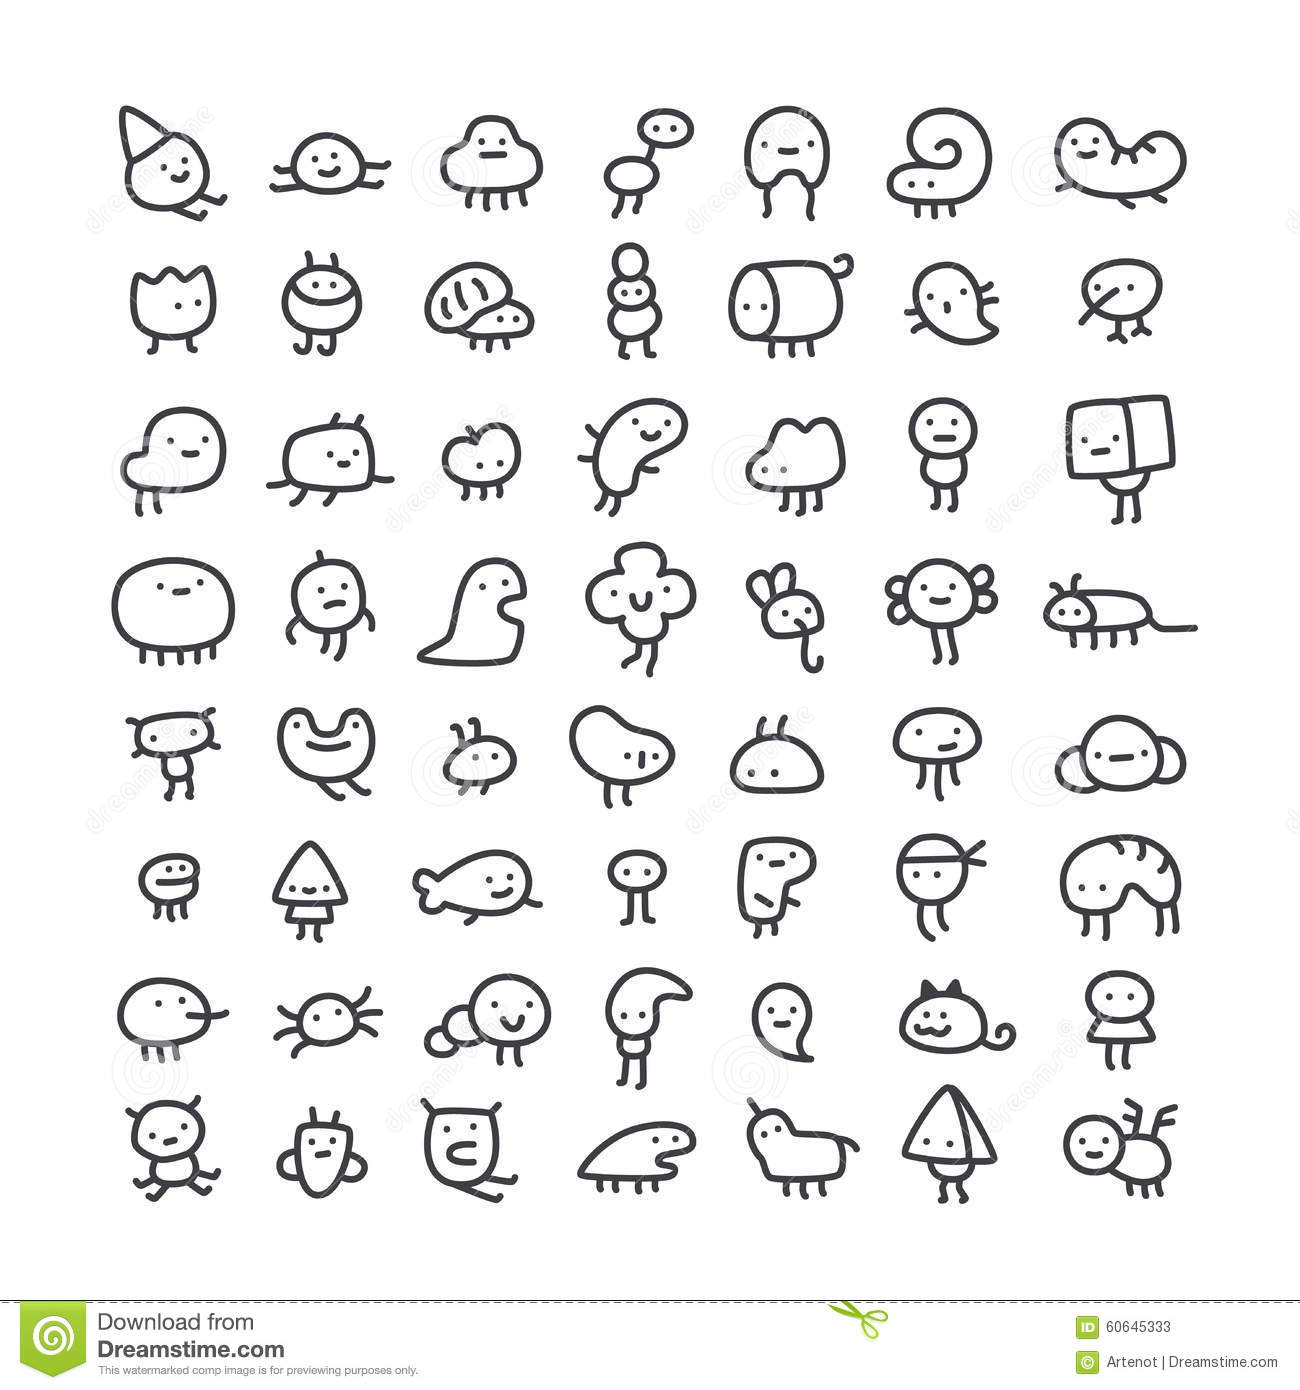 Simple Line Art Designs : Set of simple line art monster characters stock vector